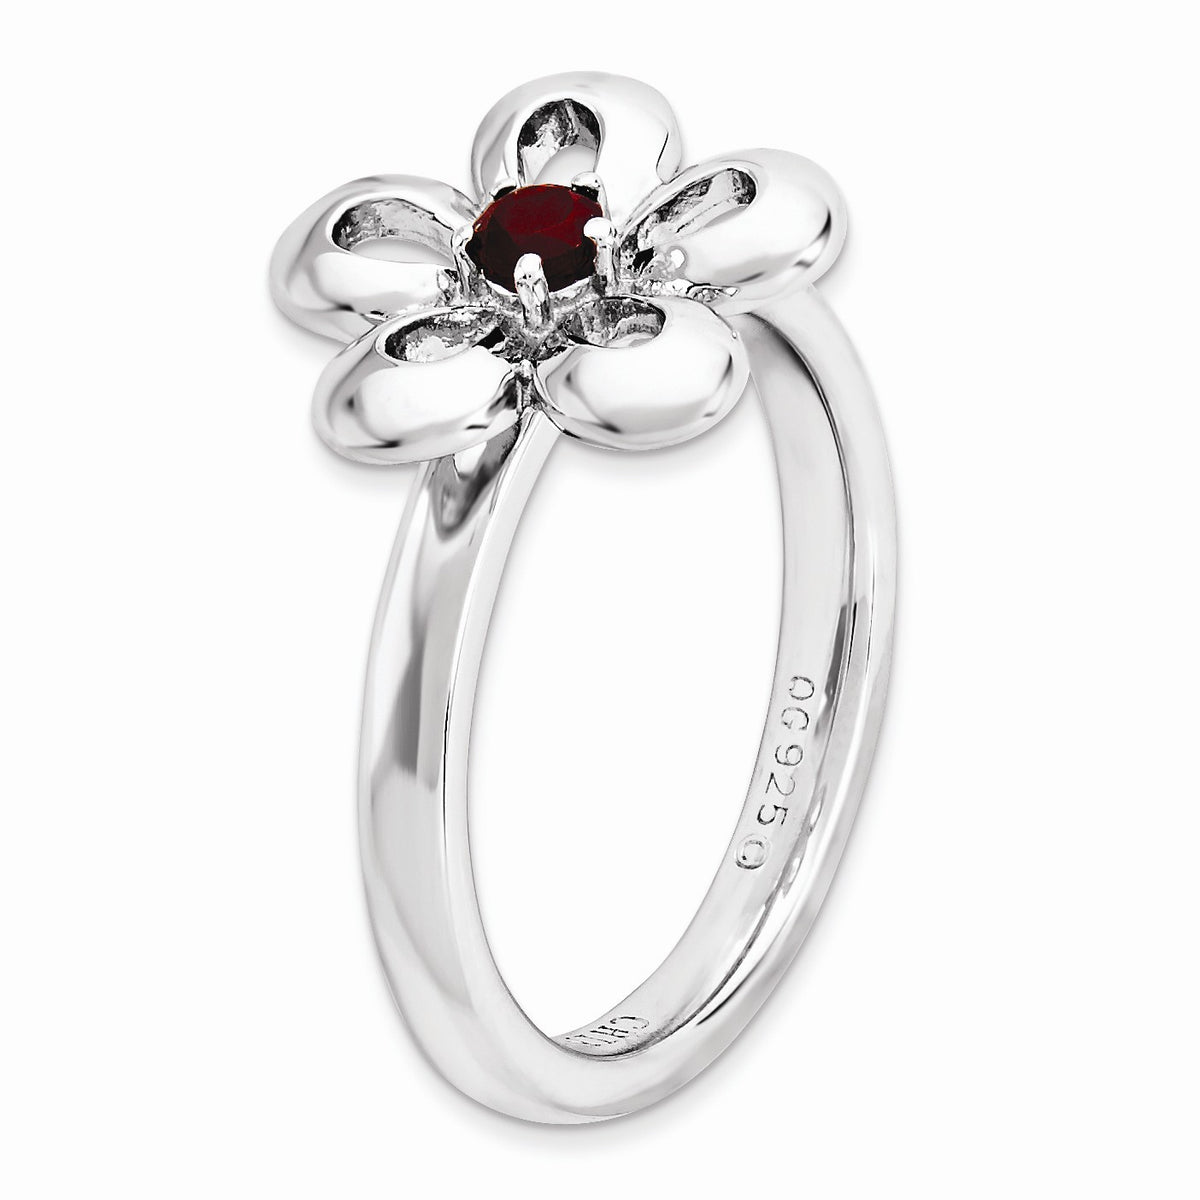 Alternate view of the Sterling Silver Stackable Garnet Petal Flower Ring by The Black Bow Jewelry Co.